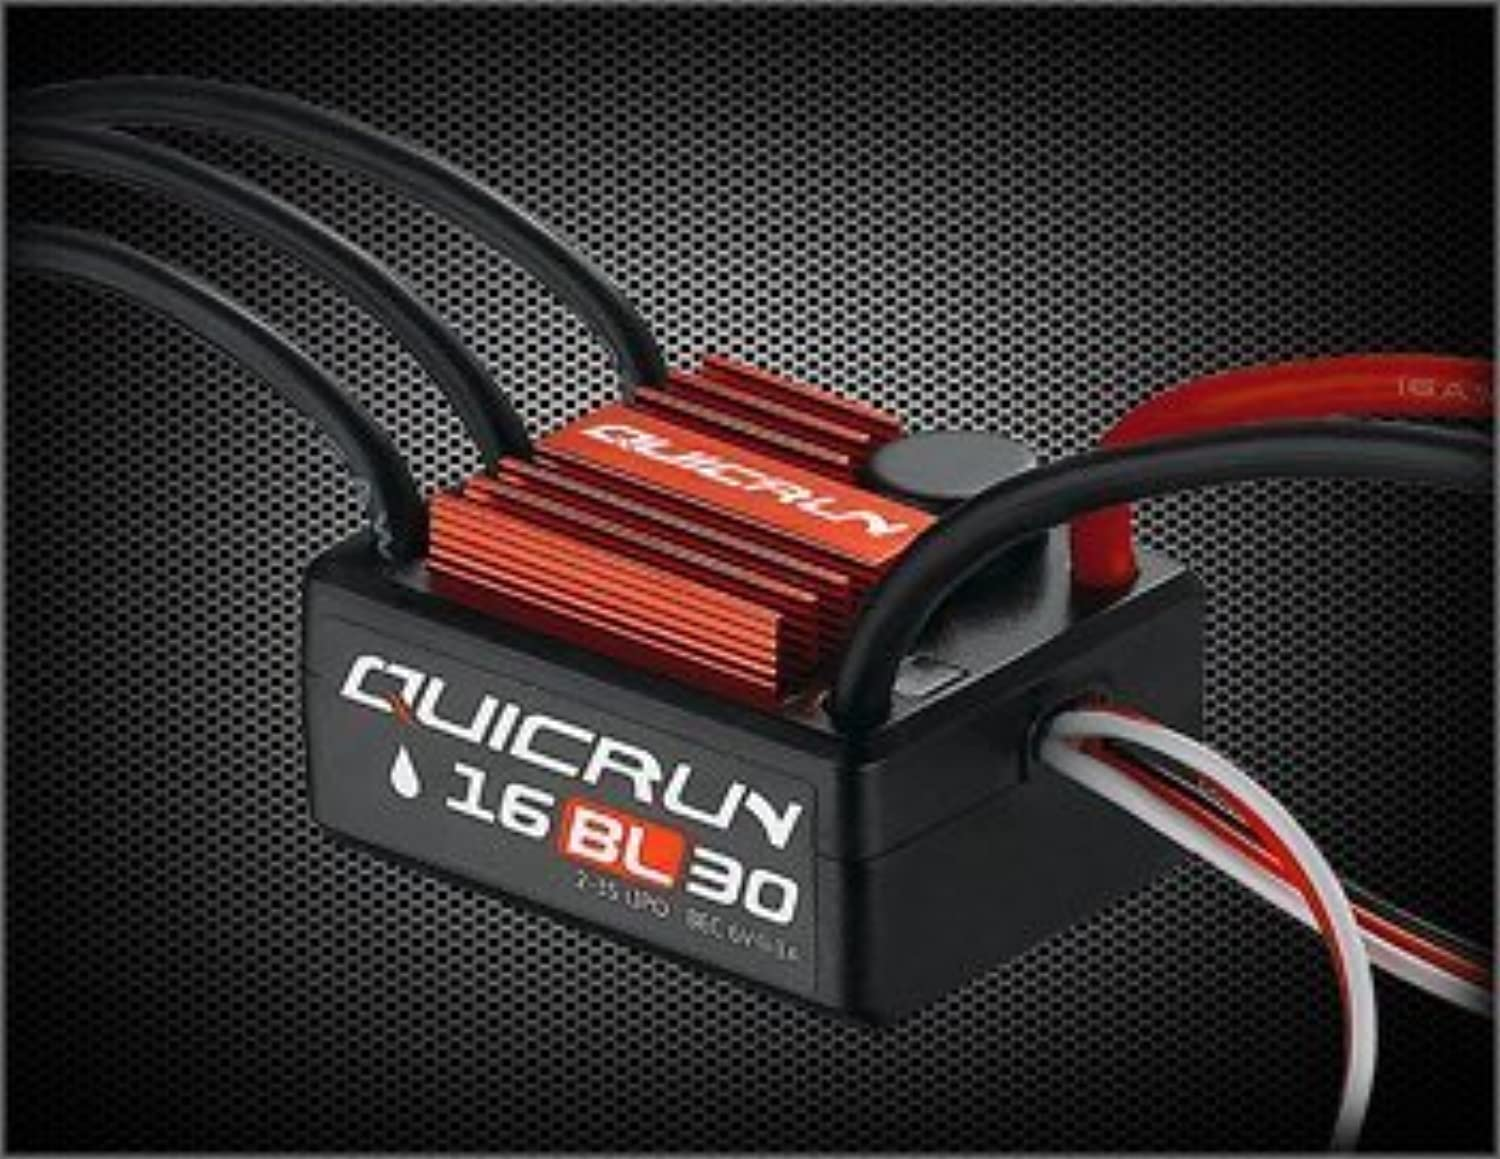 HOBBYWING QuicRunWP16BL30 by HOBBYWING Technology